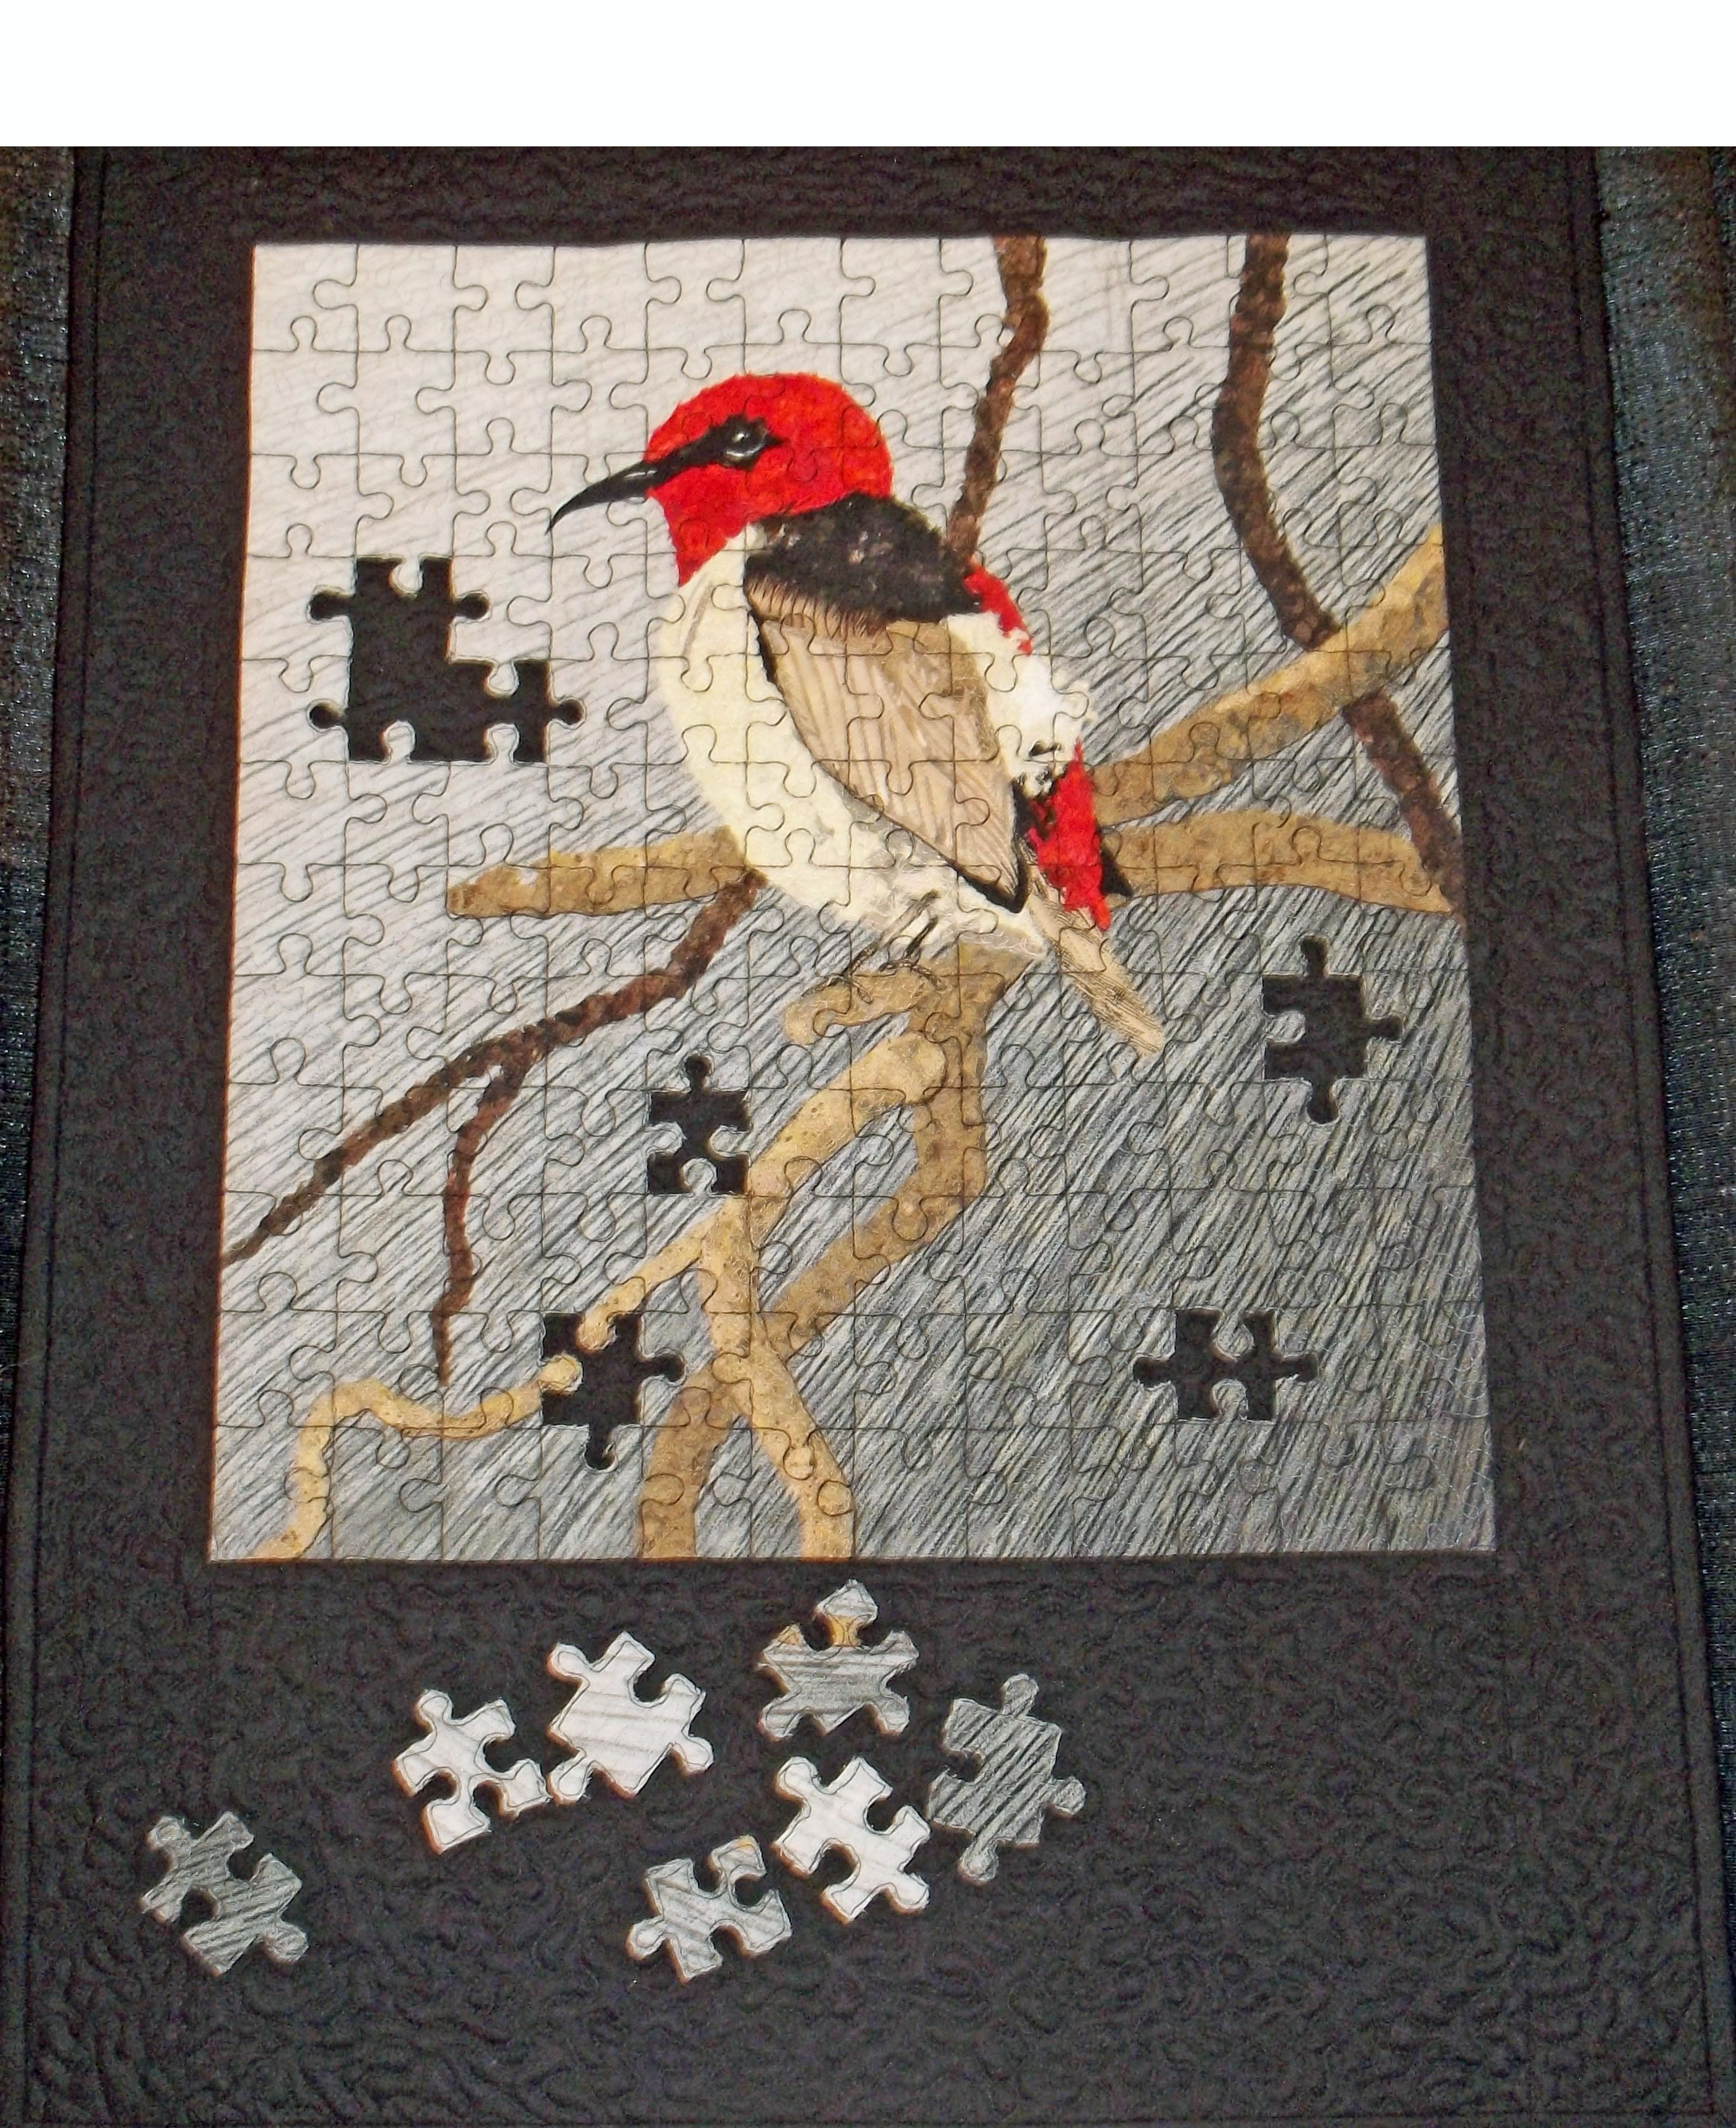 Jigsaw Puzzle Quilt With A Bird On It Puzzle